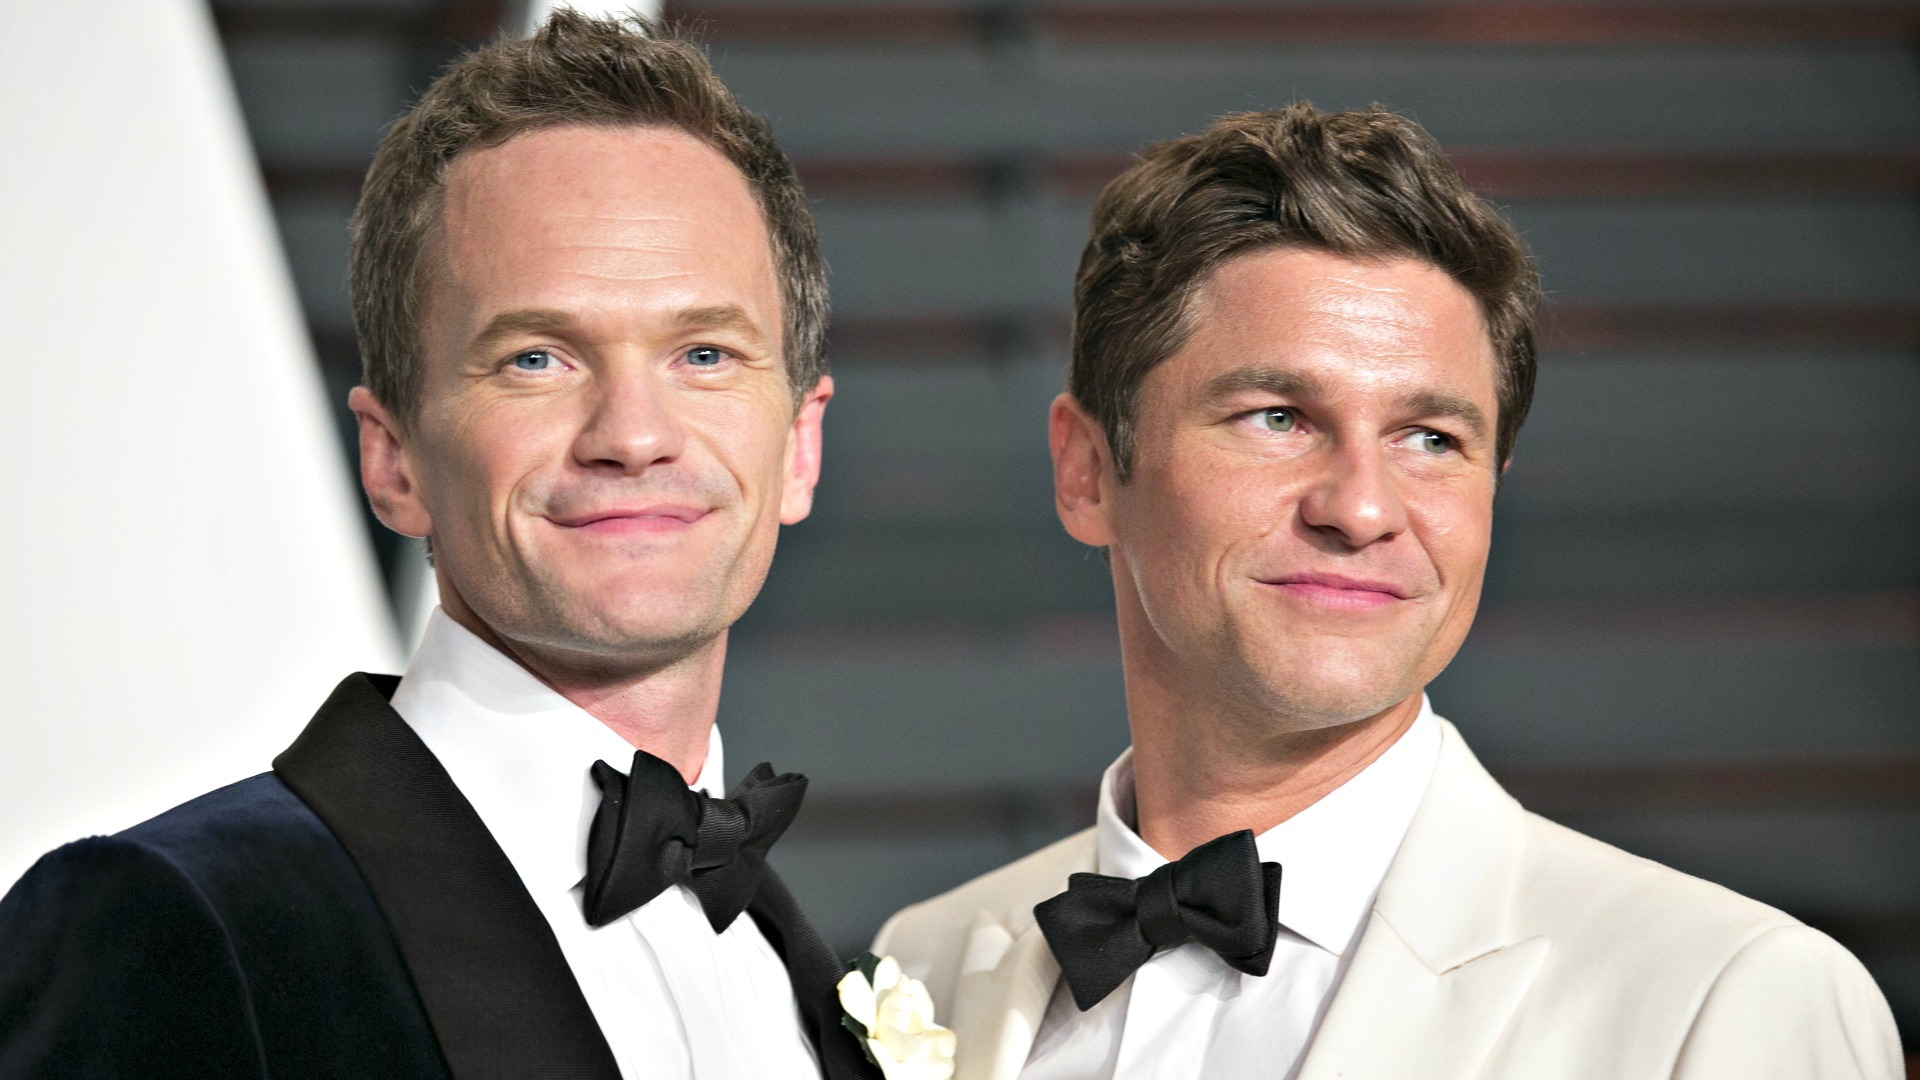 Neil Patrick Harris Hd